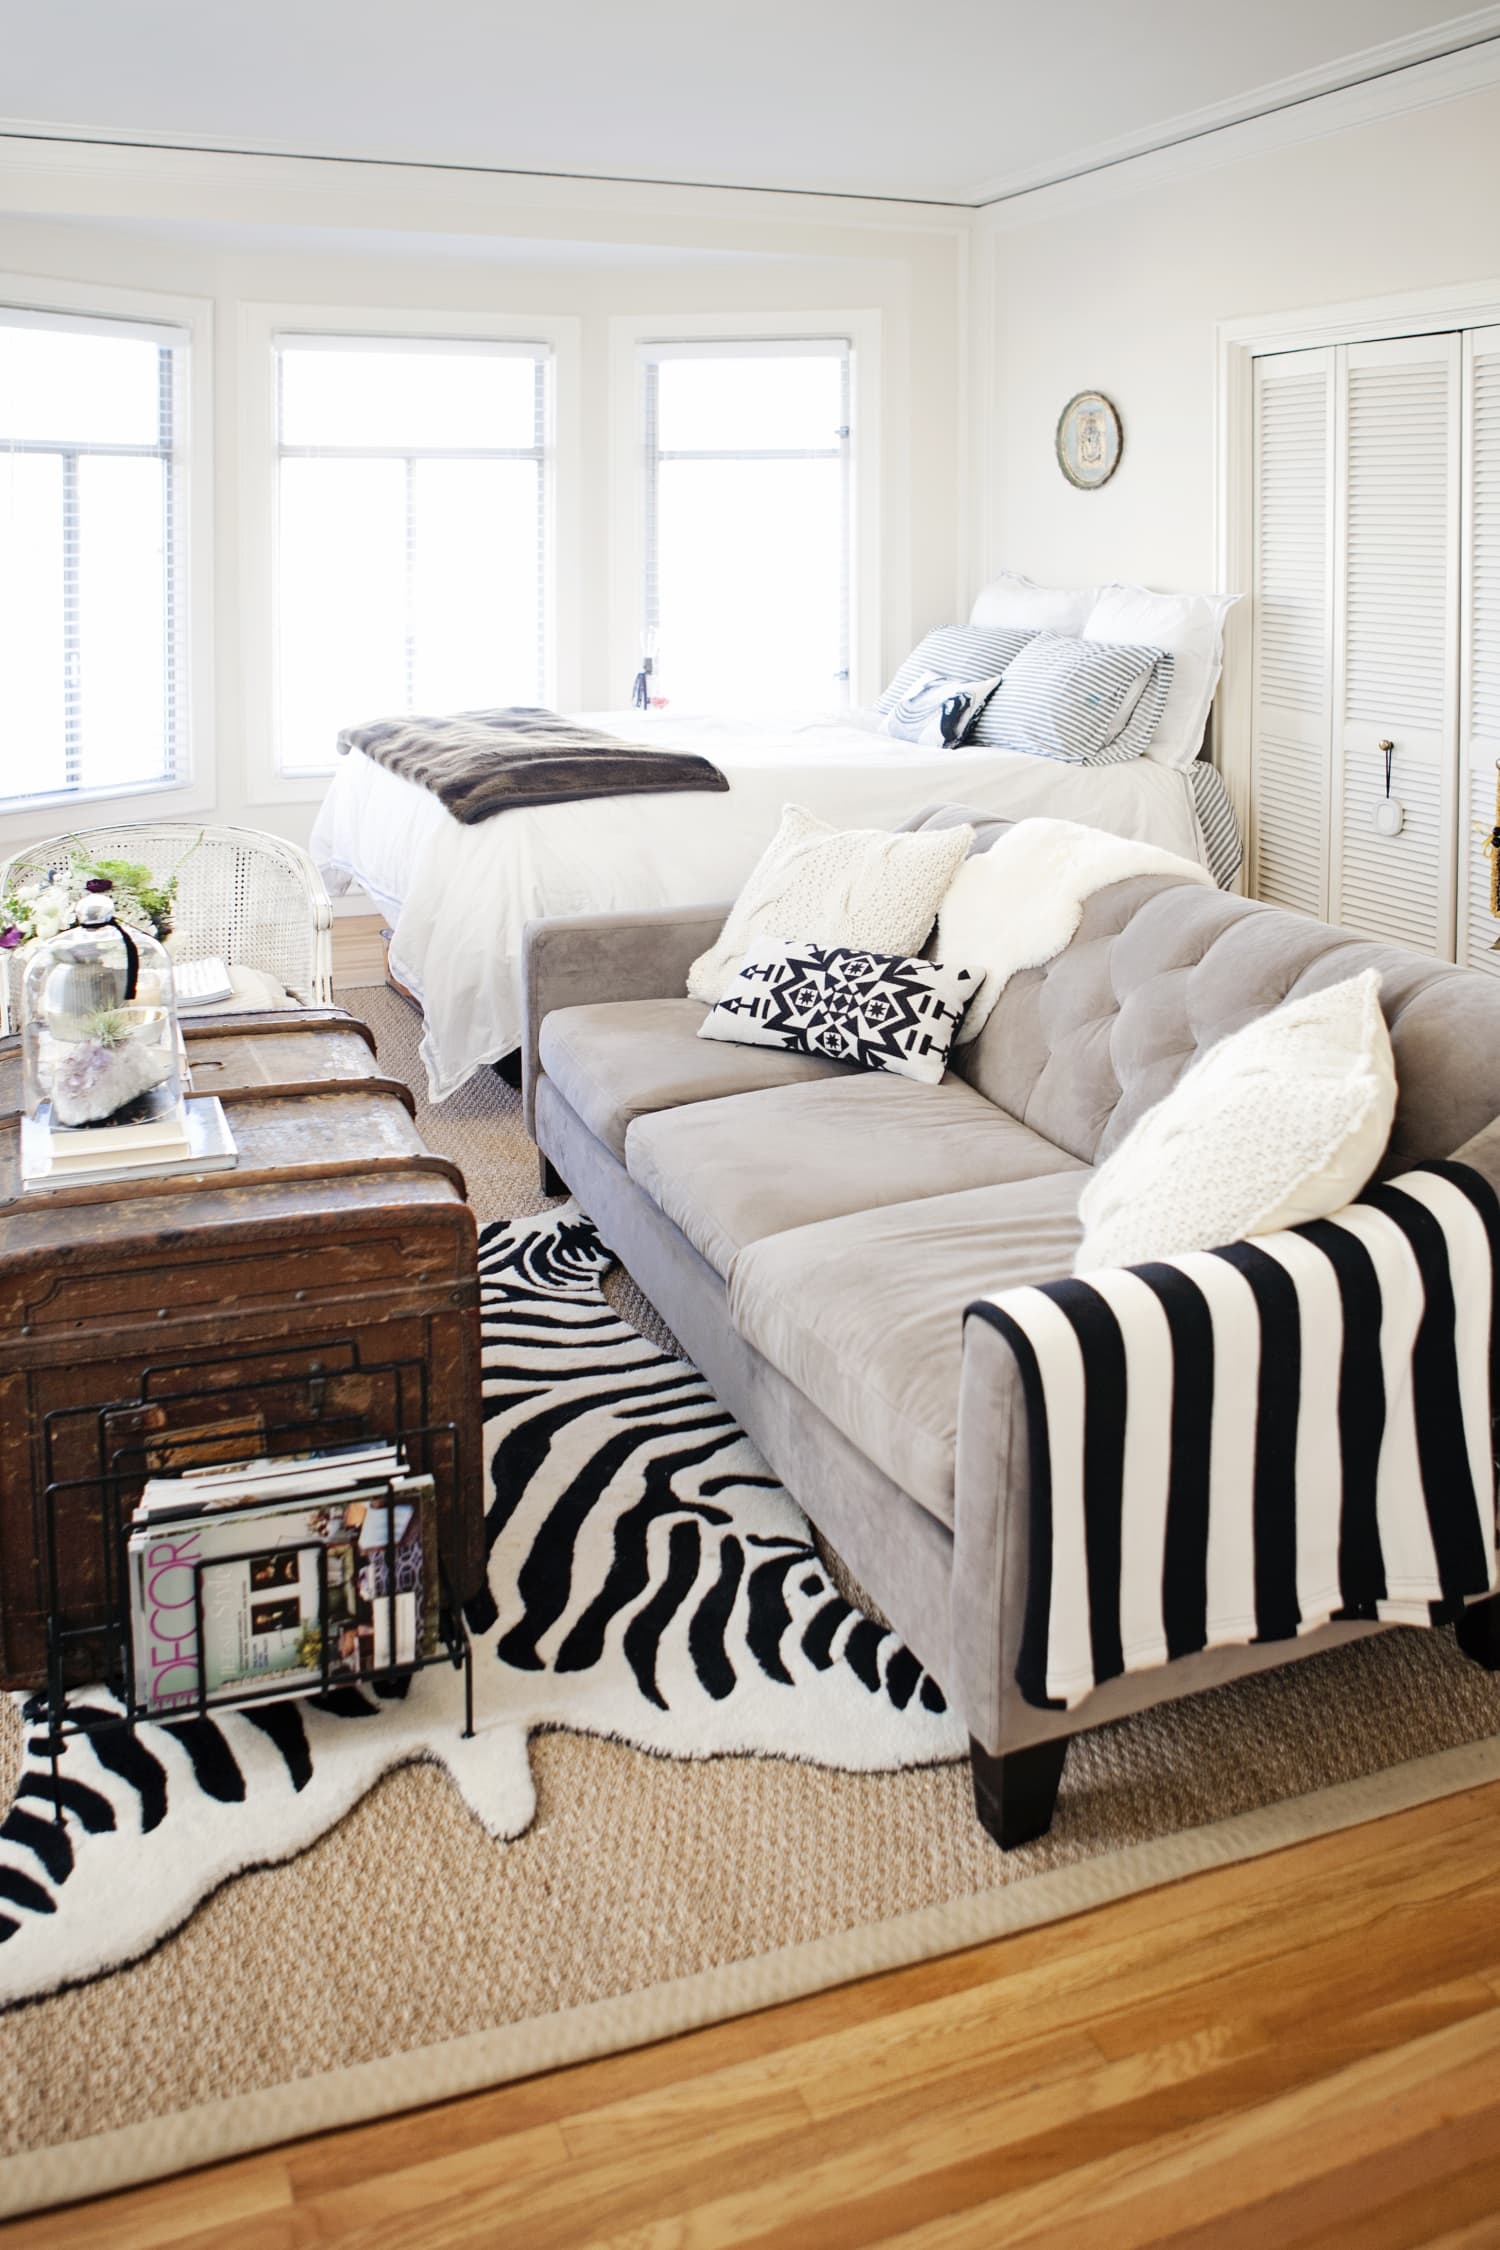 6 Tried-and-True Tips for Making Small Spaces More Livable